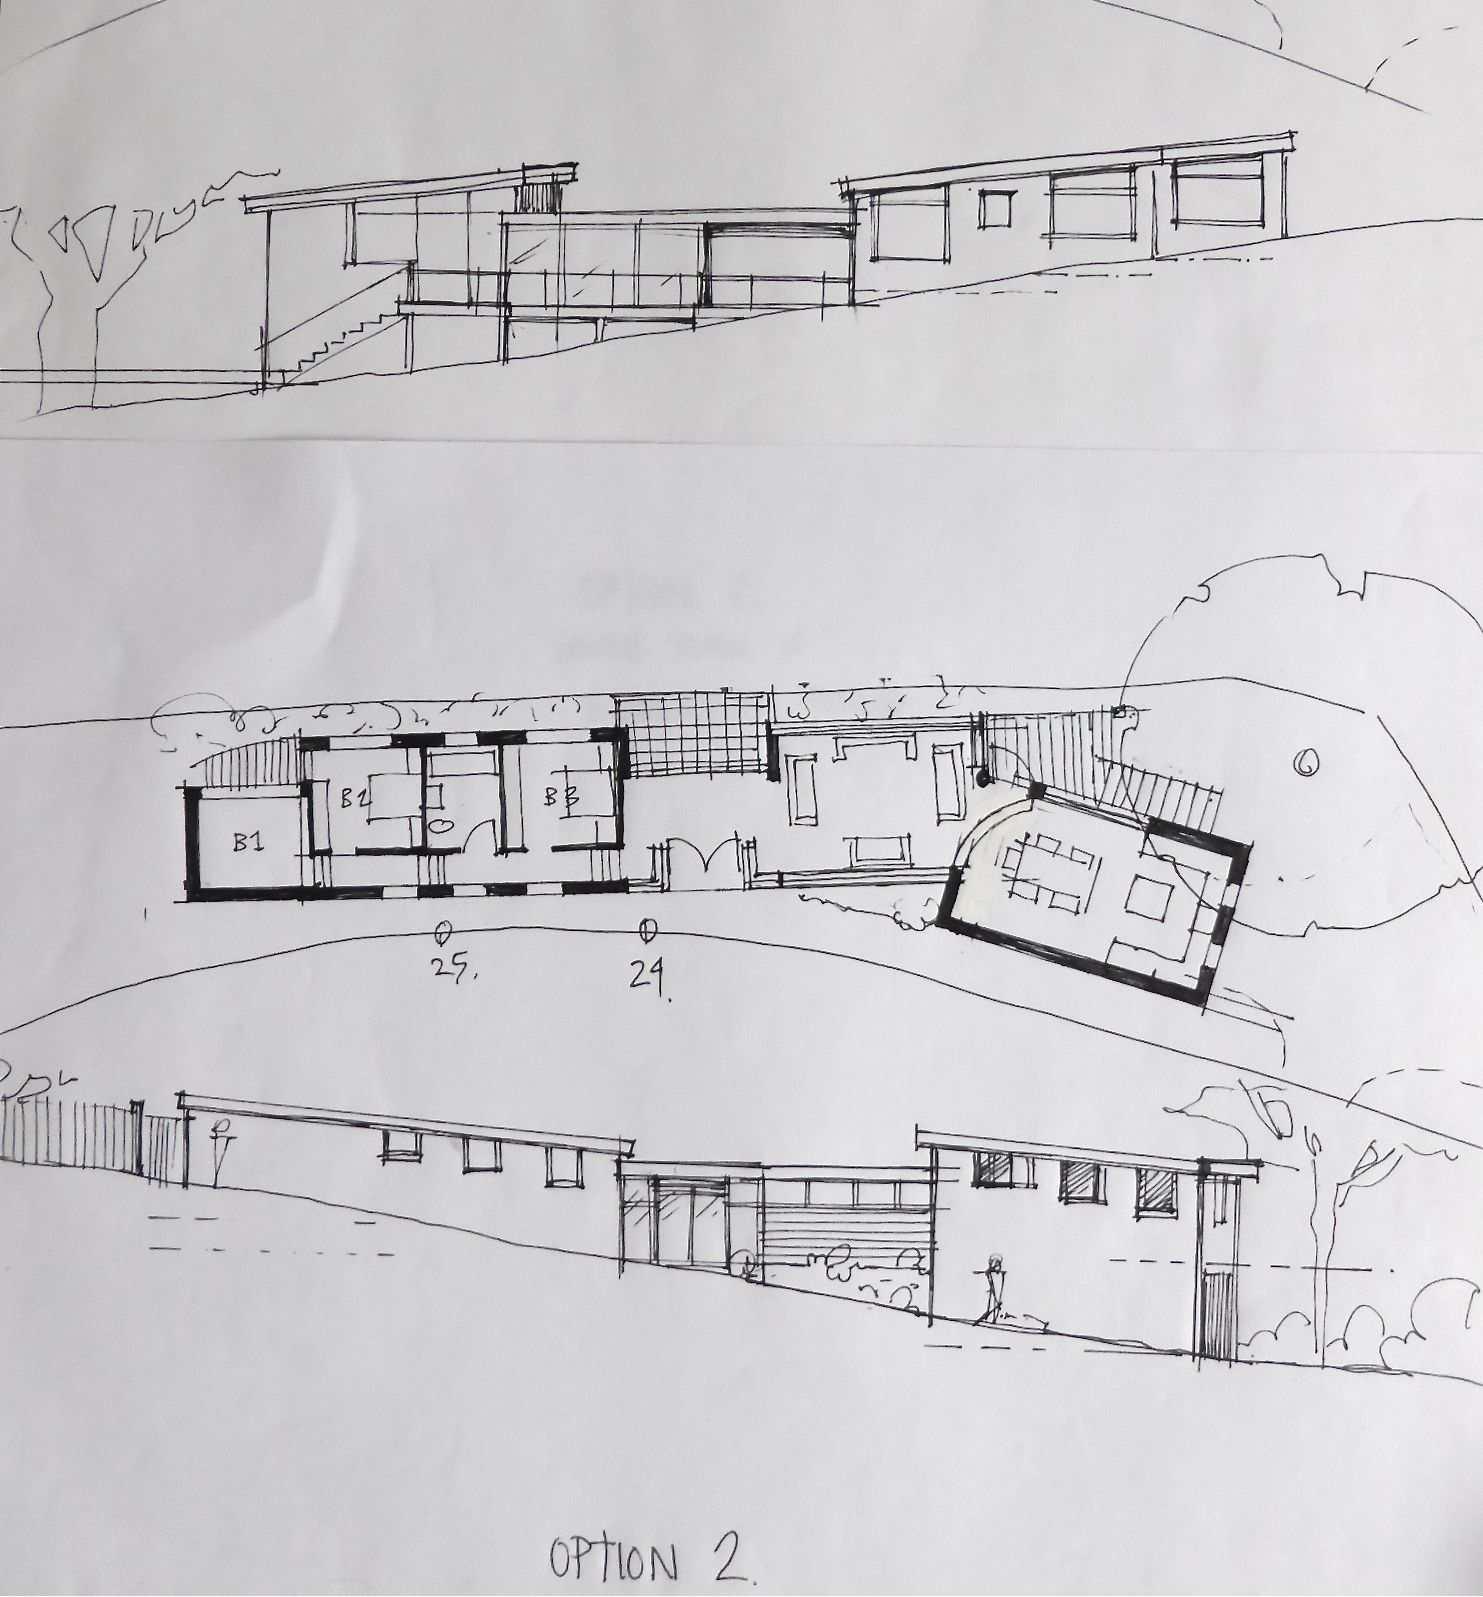 sketch design for a new build house on long narrow sloping site